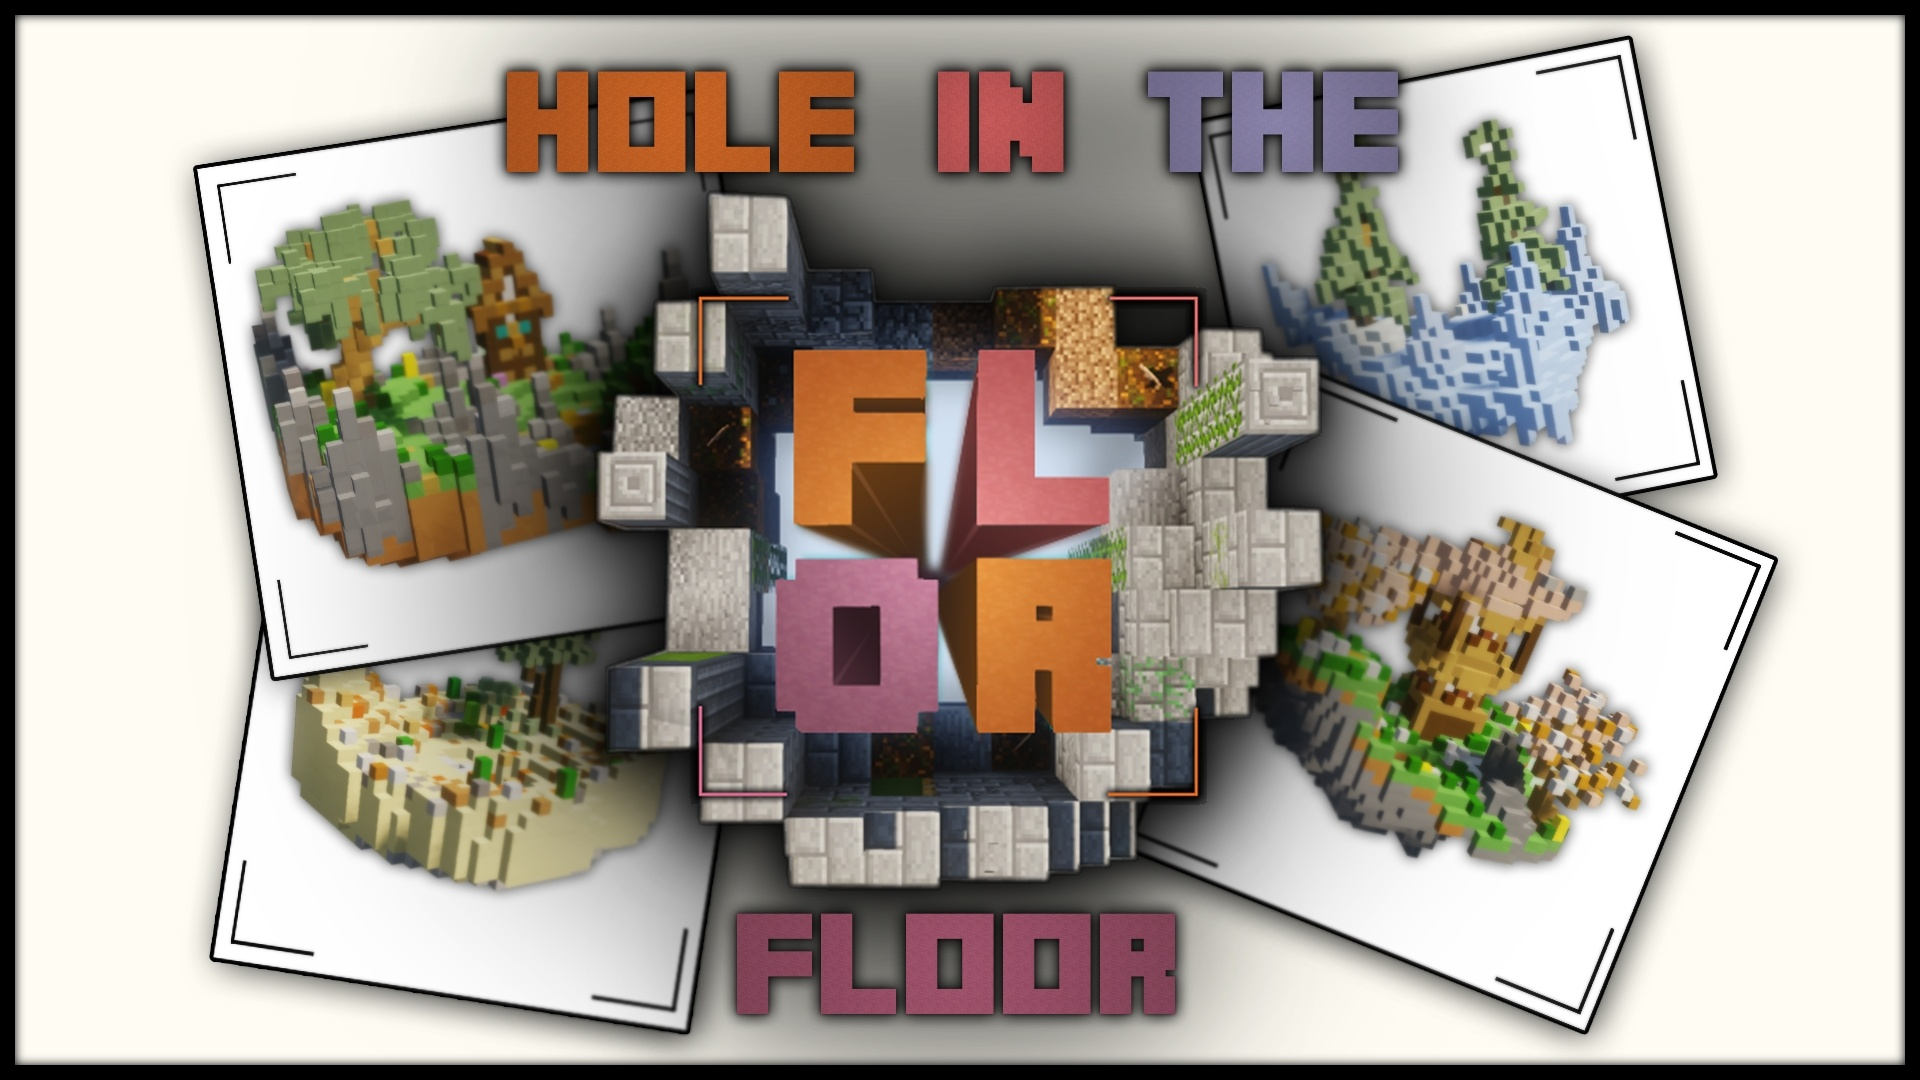 Hole in the Floor